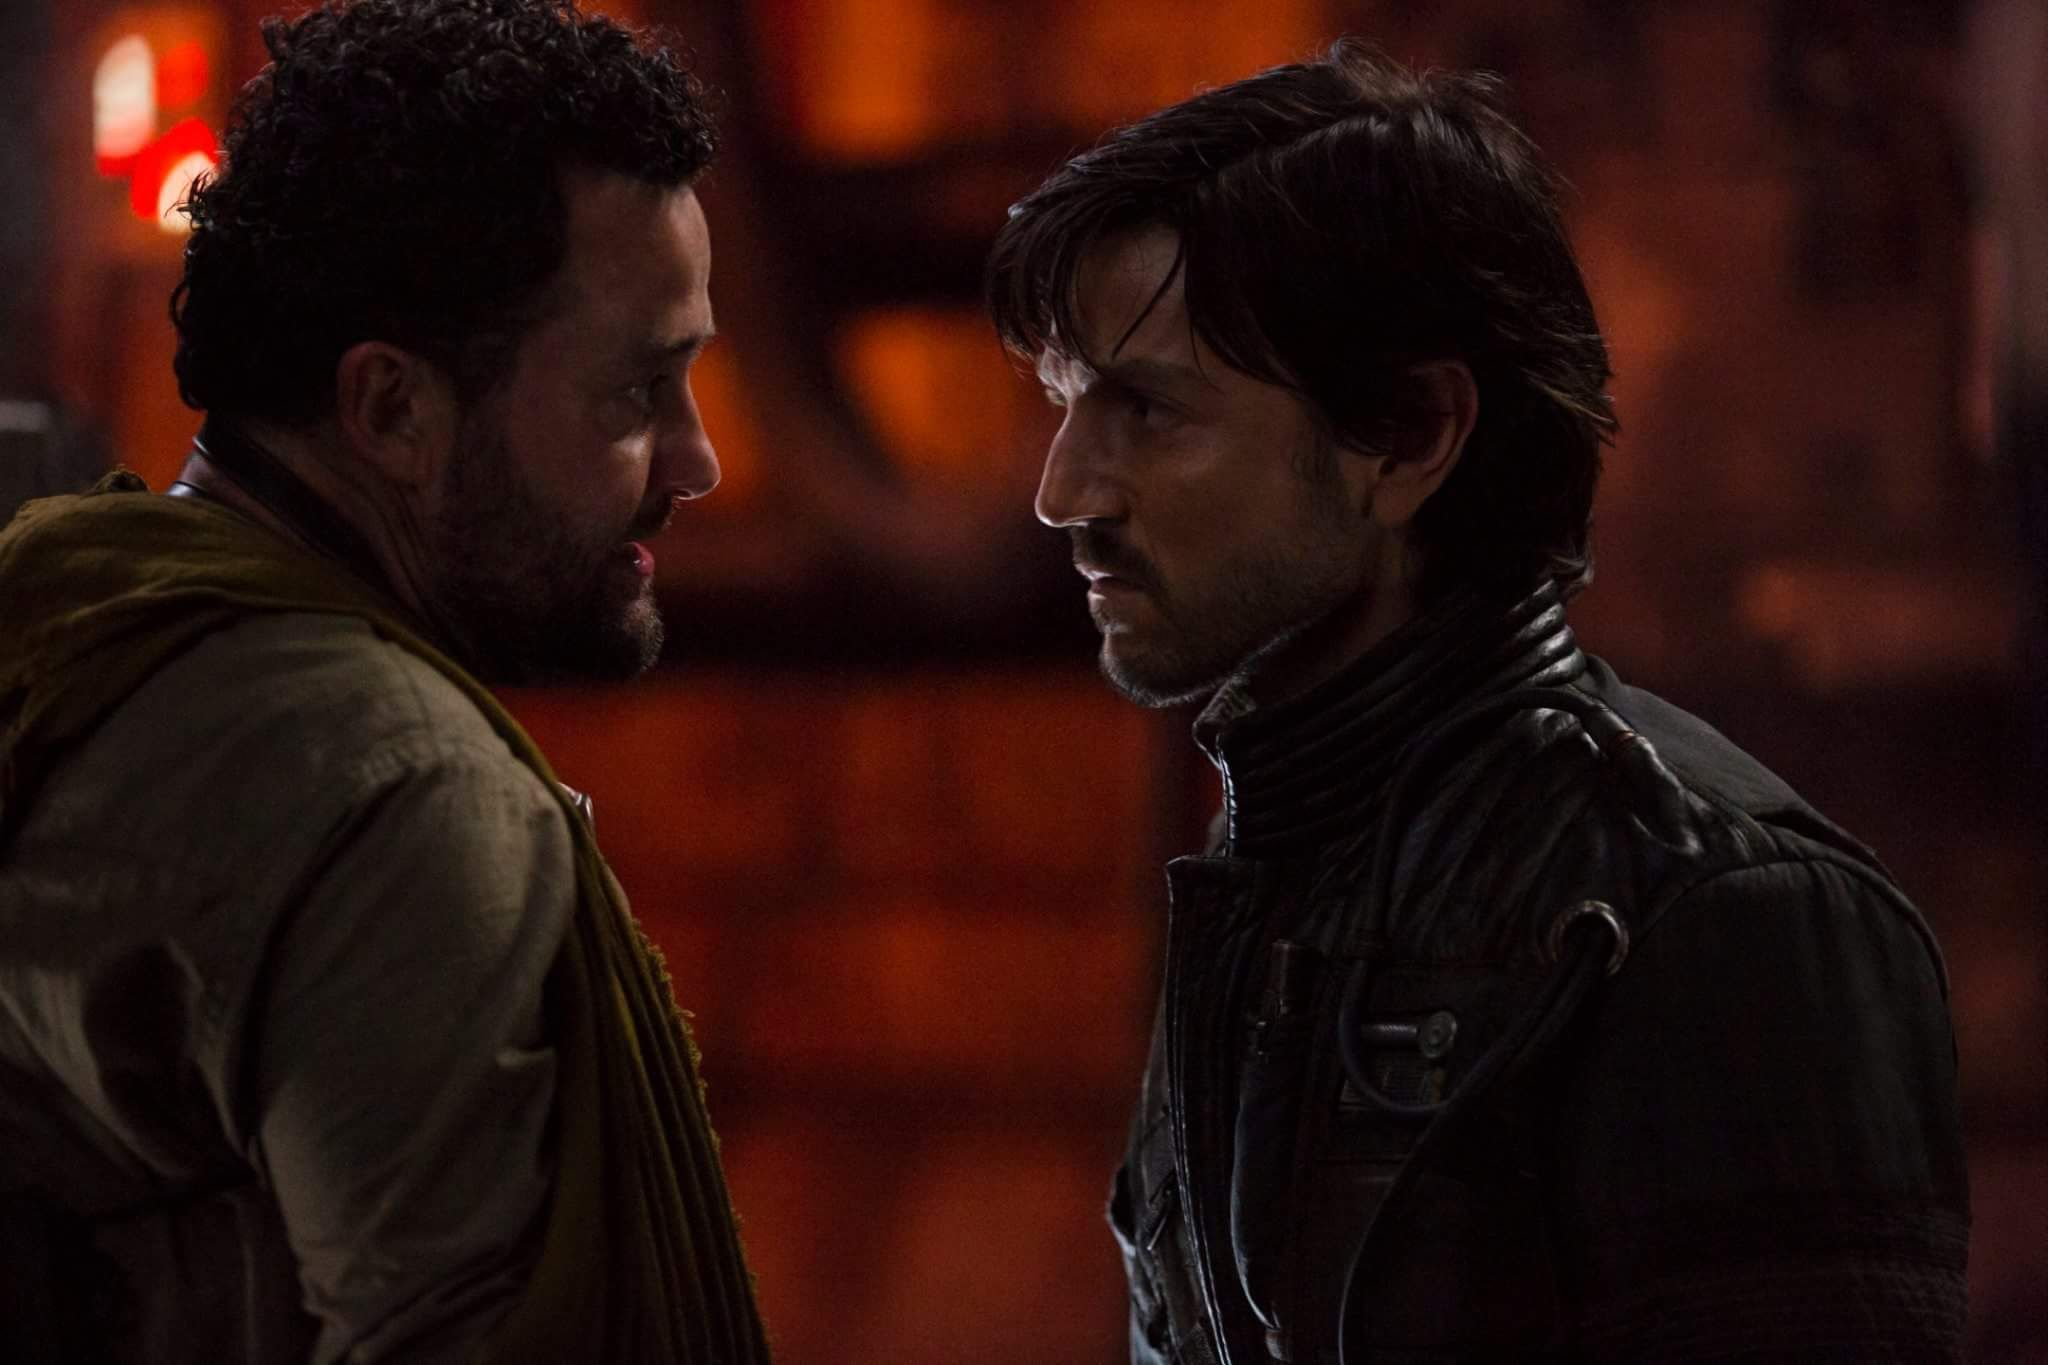 star-wars-live-action-cassian-andor-diego-luna-rogue-one